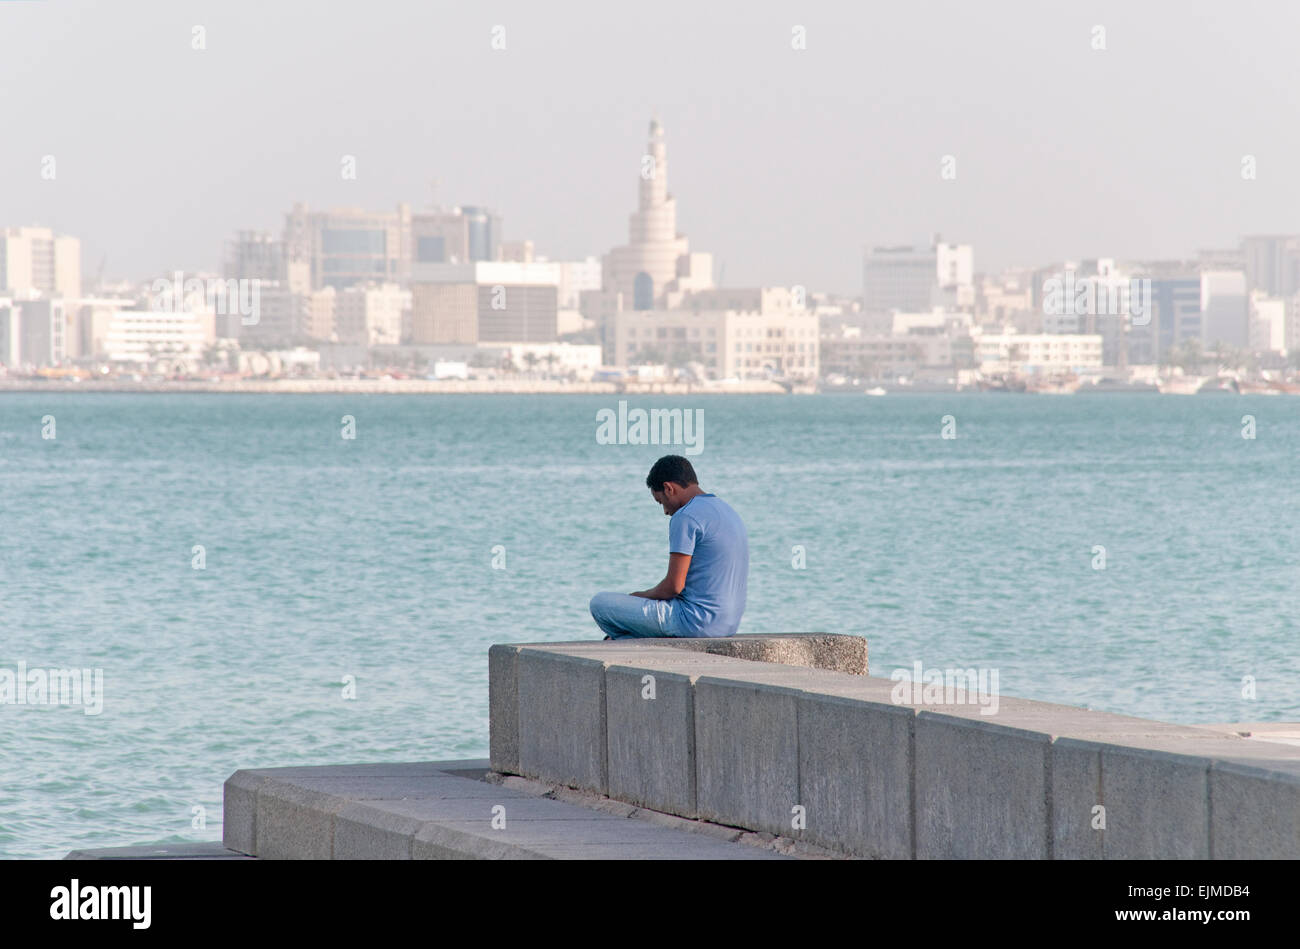 A man sits alone in Doha, Qatar, with the cityscape and Arabian Gulf in the background. Stock Photo